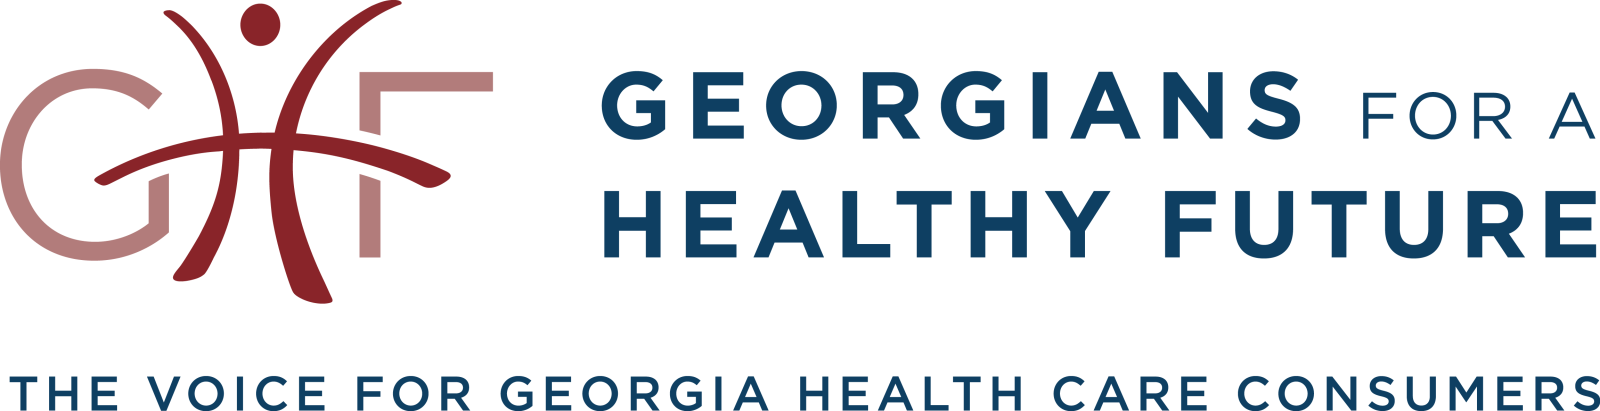 Georgians for a Healthy Future Logo